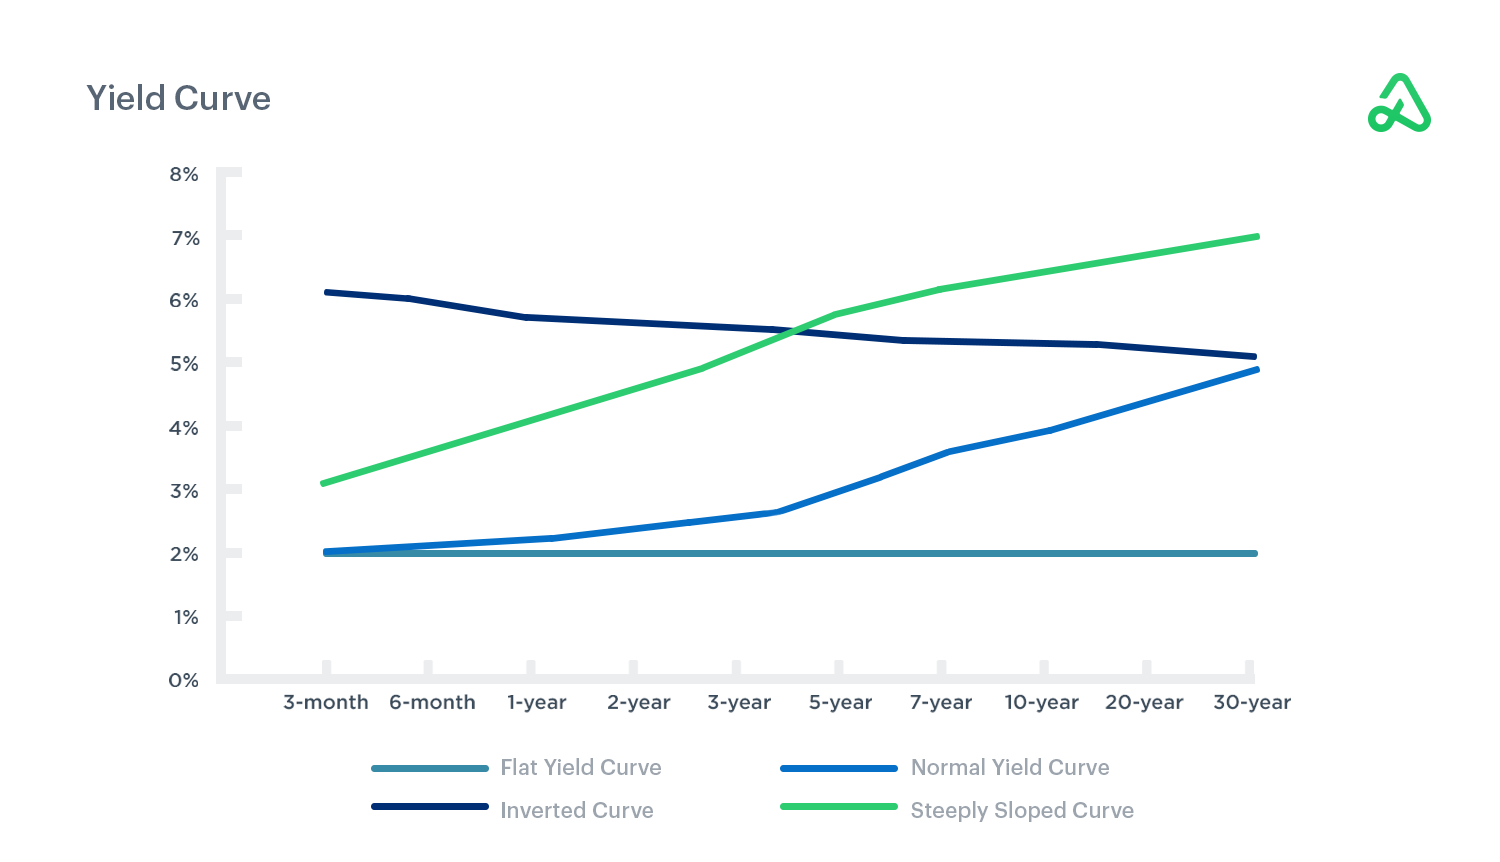 Flat, normal, inverted, and steep yield curves